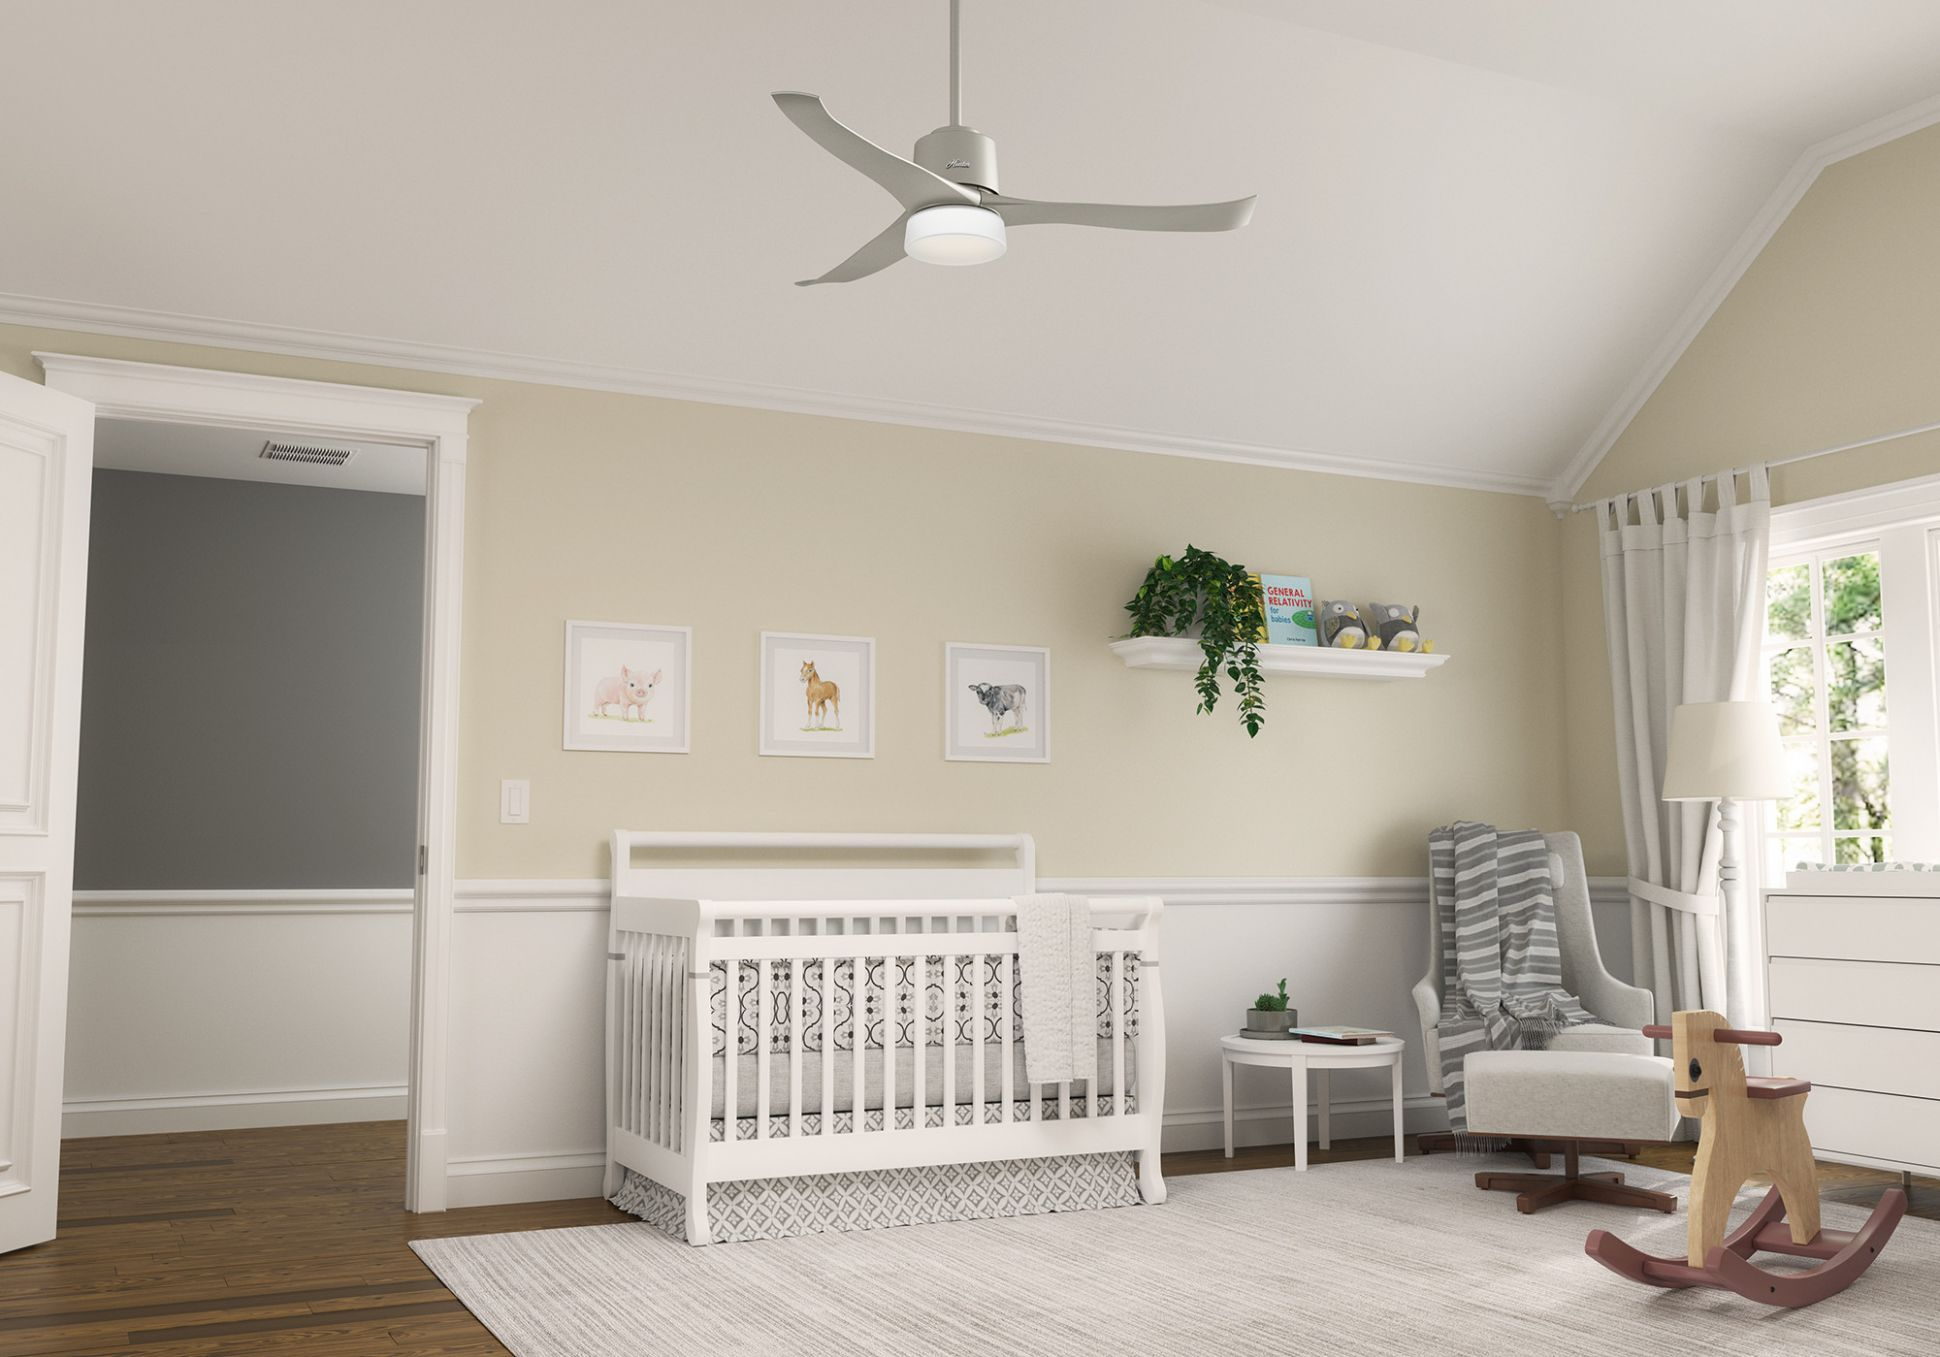 Crib, rocking chair, ceiling fan: Getting your baby's room ready ...